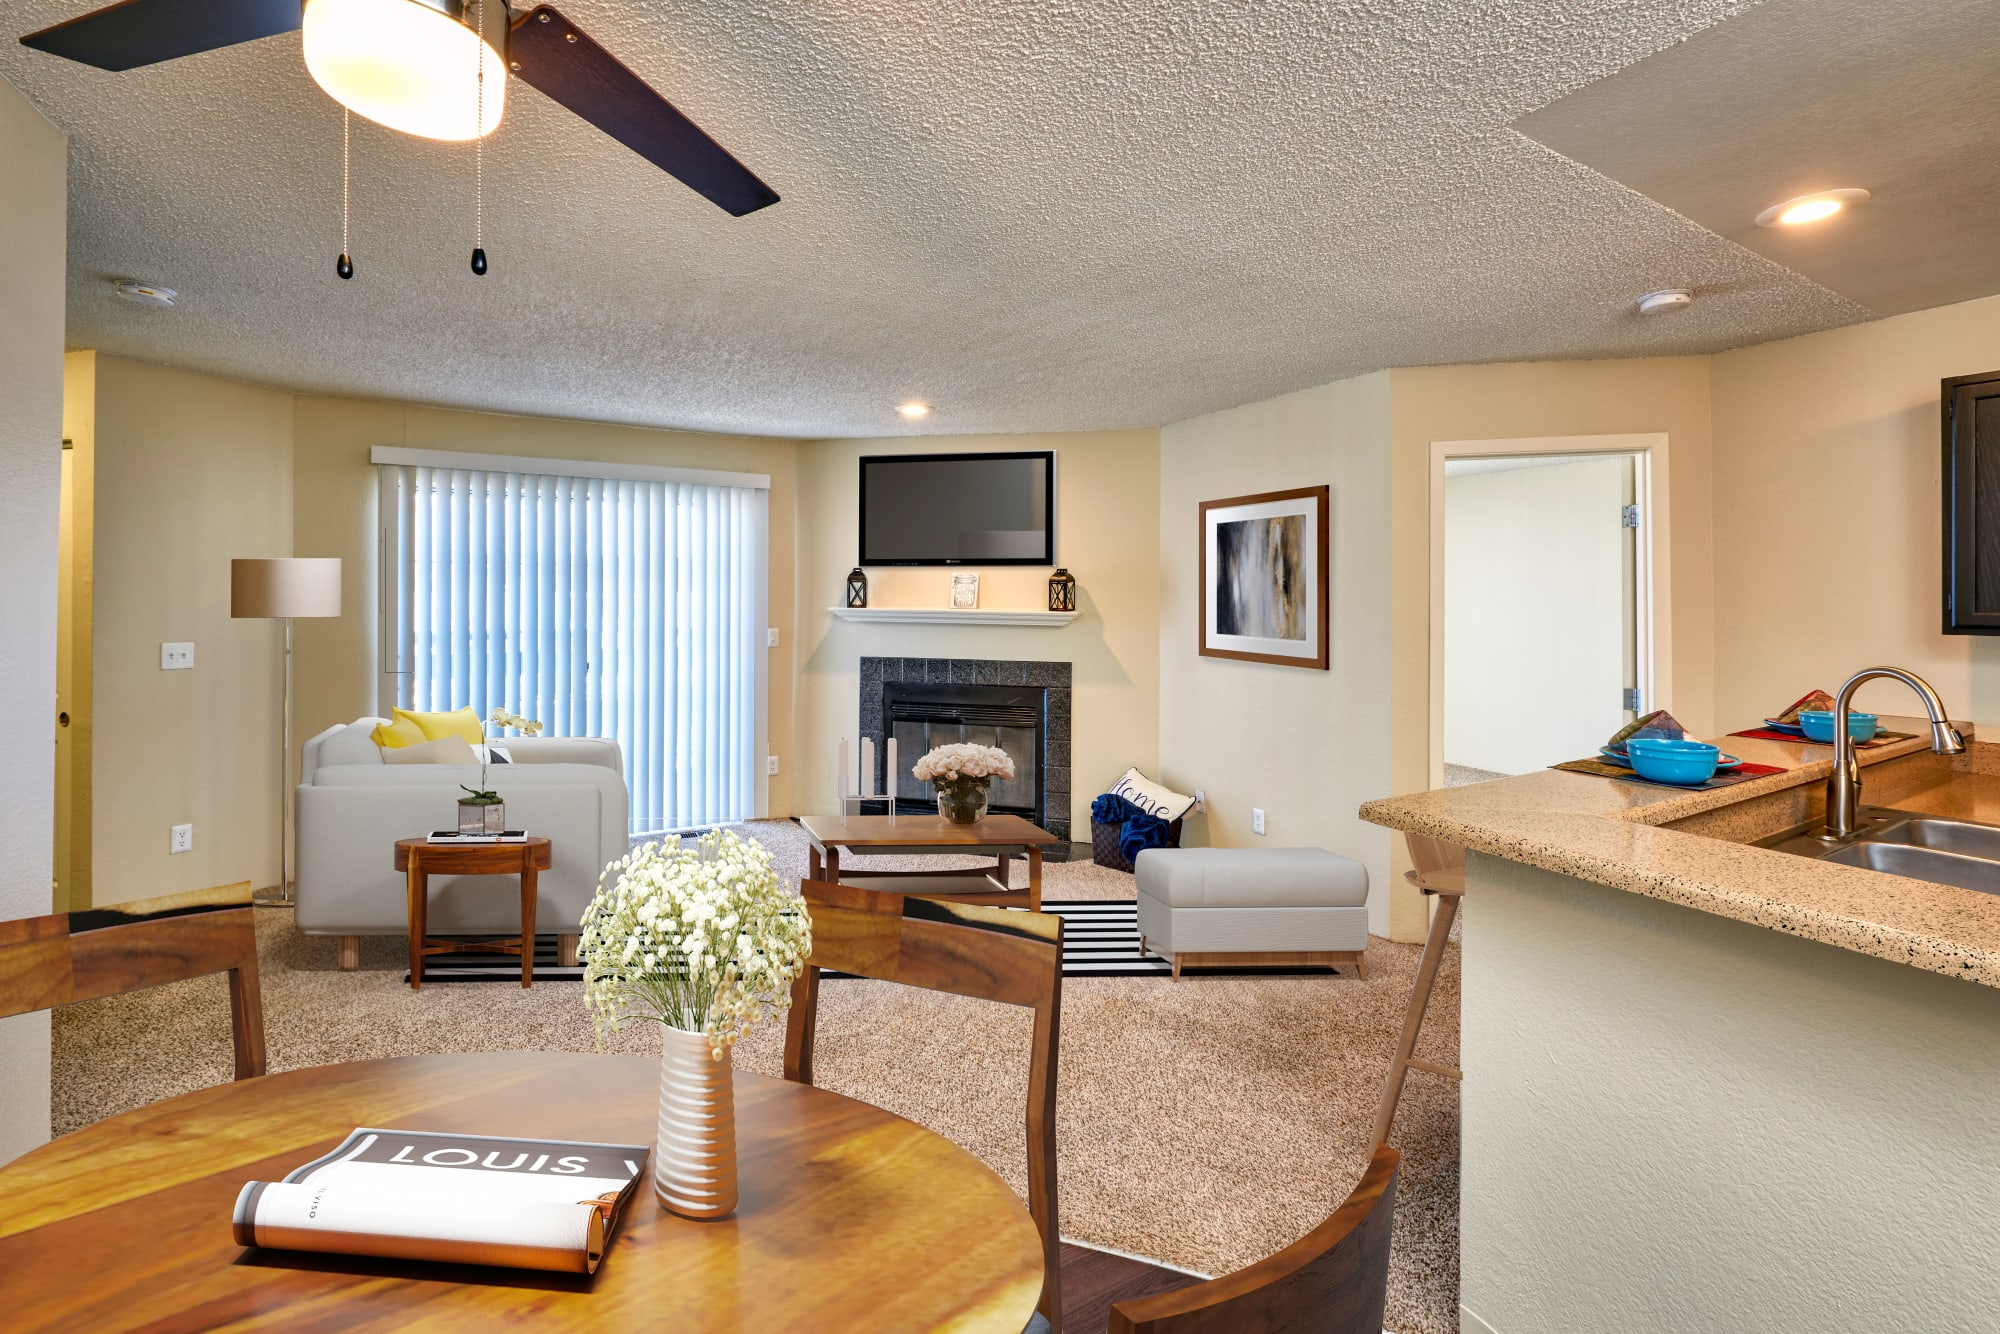 Living room with a fireplace and patio door at Bluesky Landing Apartments in Lakewood, Colorado